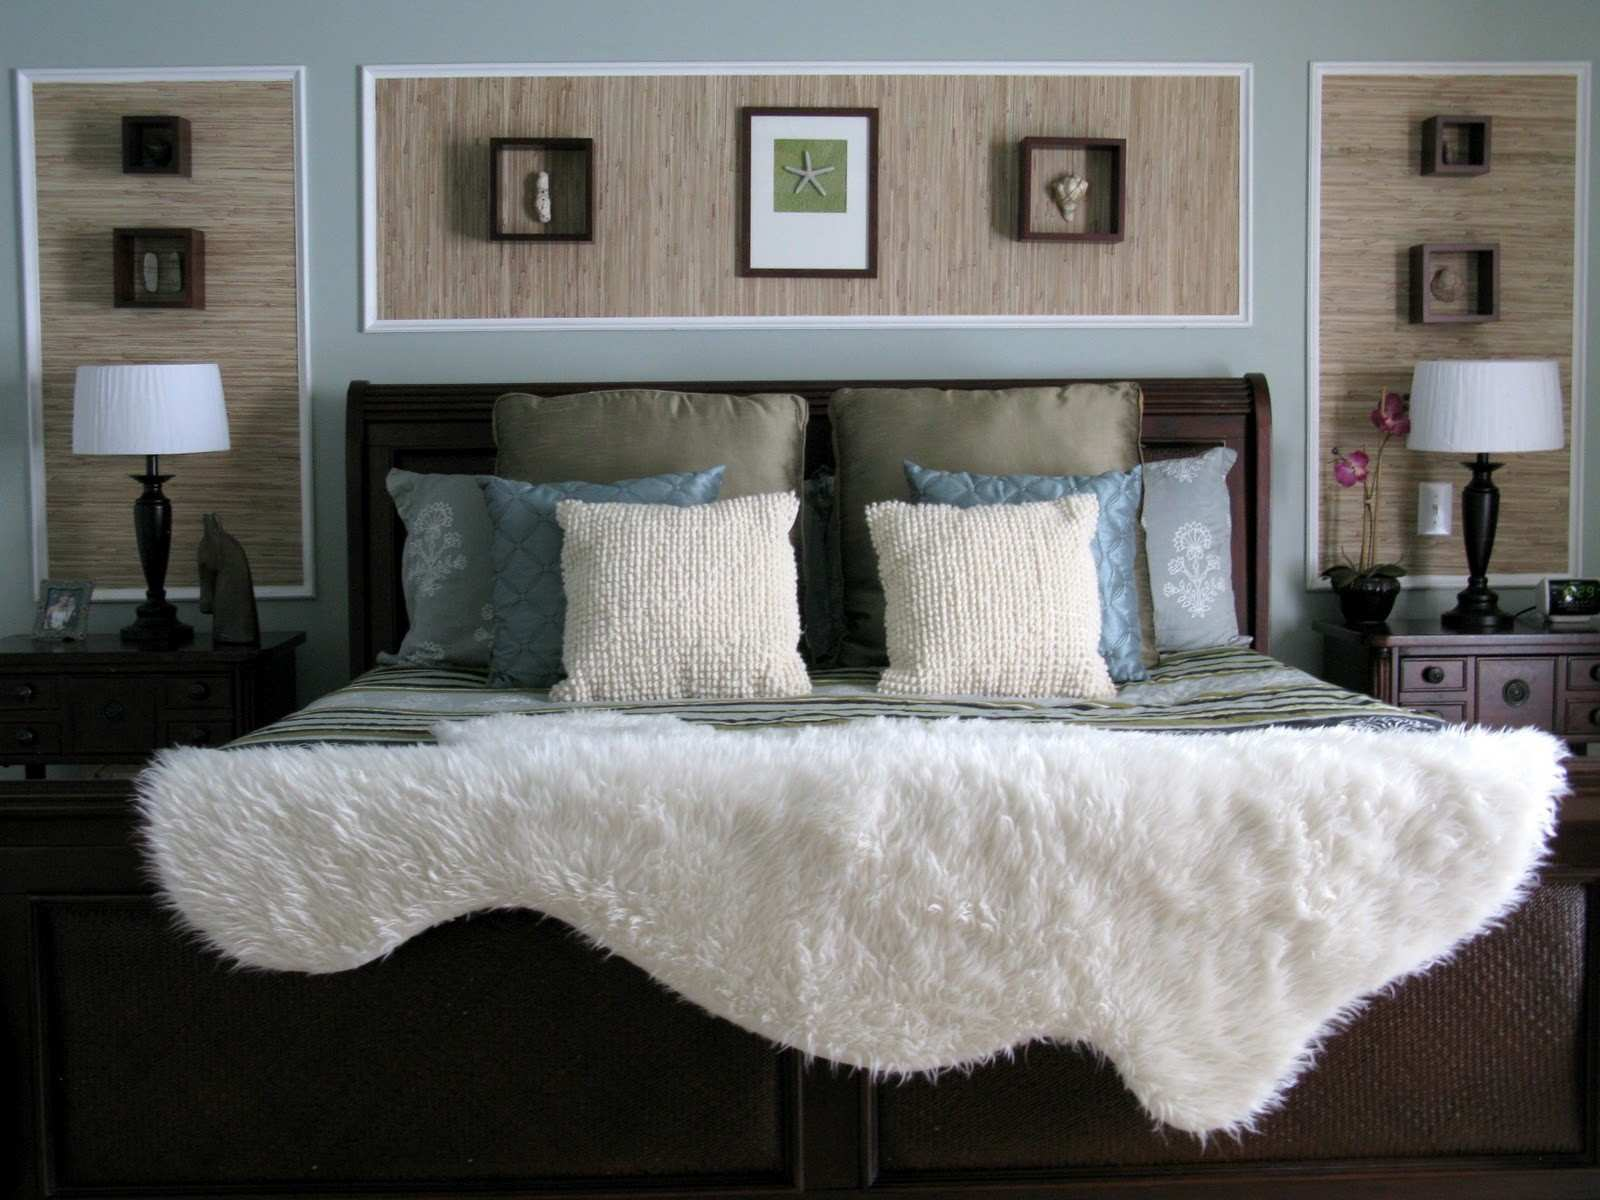 Home Bedroom Design Full Lovely ¢Ë†Å¡ 24 Beautiful Wall For Living